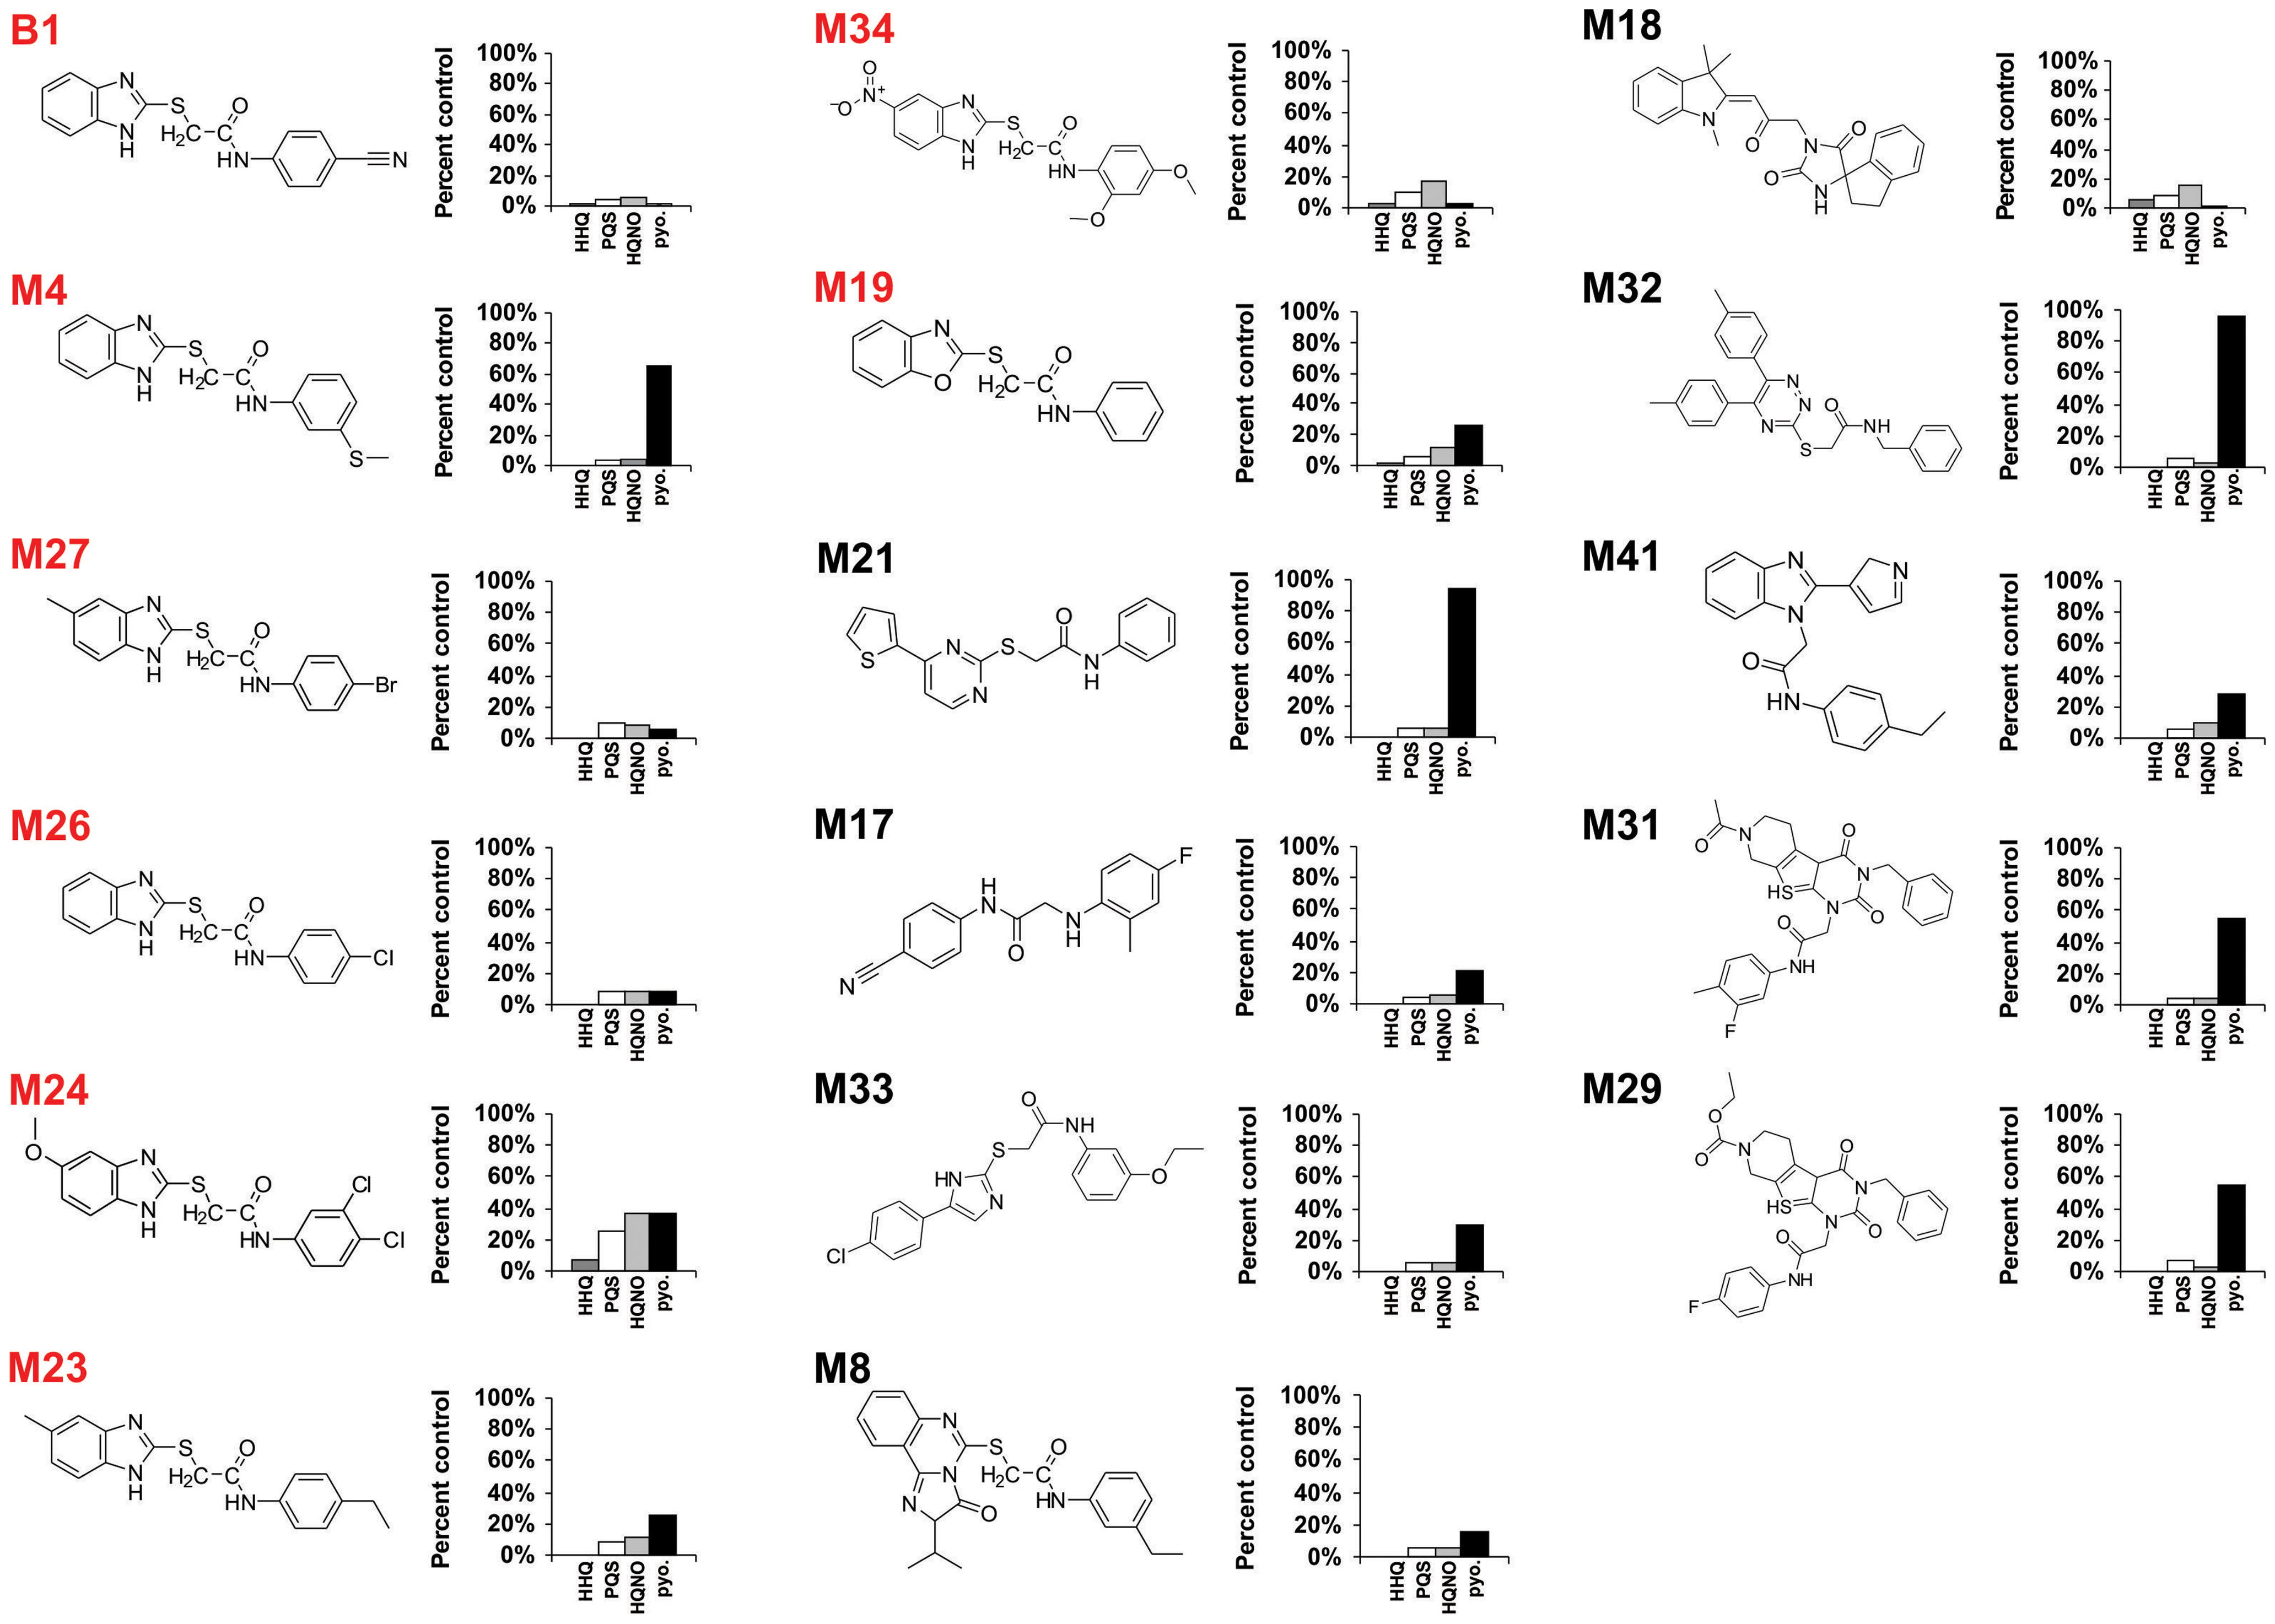 Chemical structures of 17 MvfR-regulon inhibitors identified by whole cell HTS, and their corresponding inhibition of HAQ and pyocyanin production.